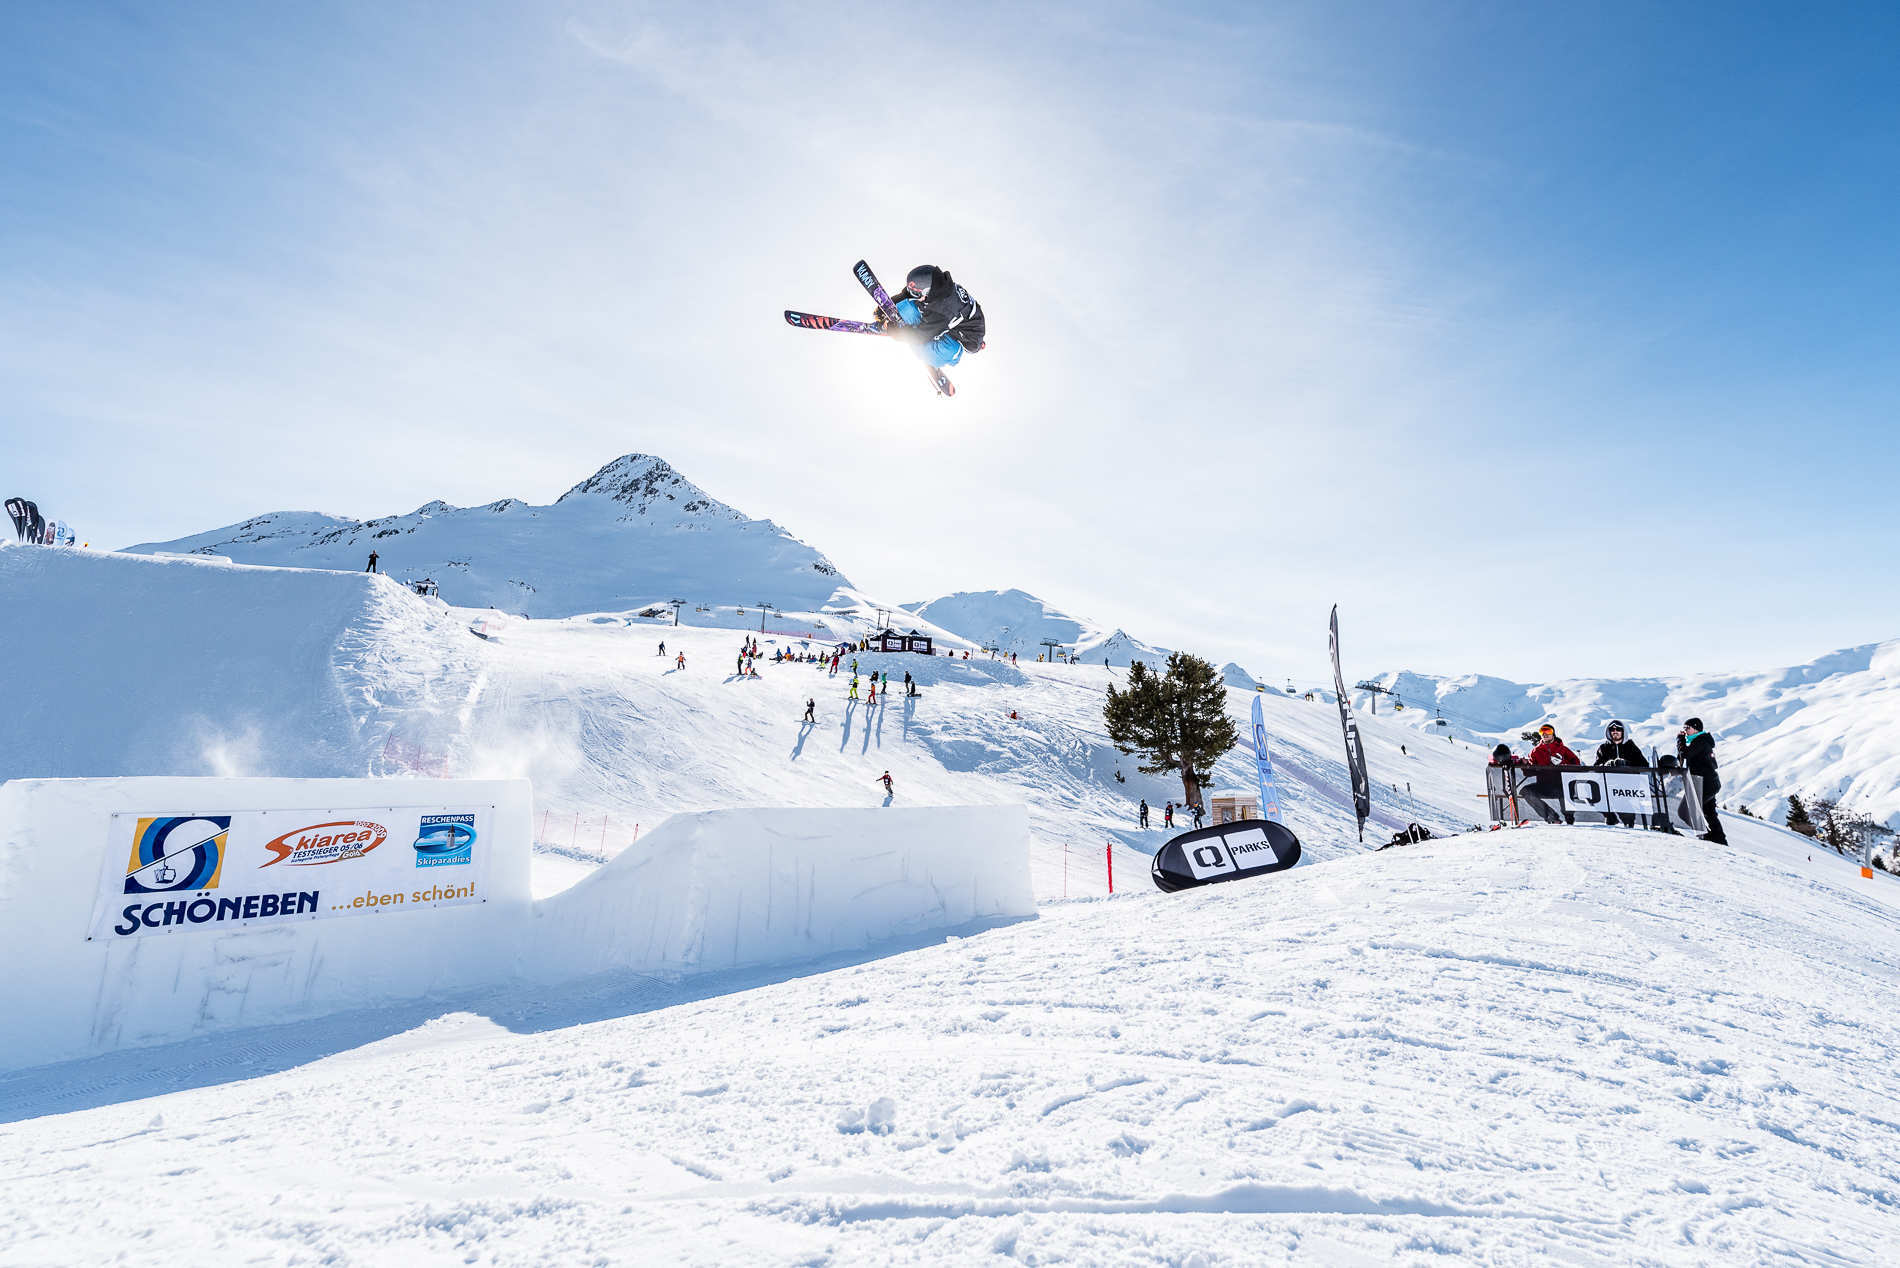 schoeneben 09 02 2019 action fs christian riefenberg qparks 2 7